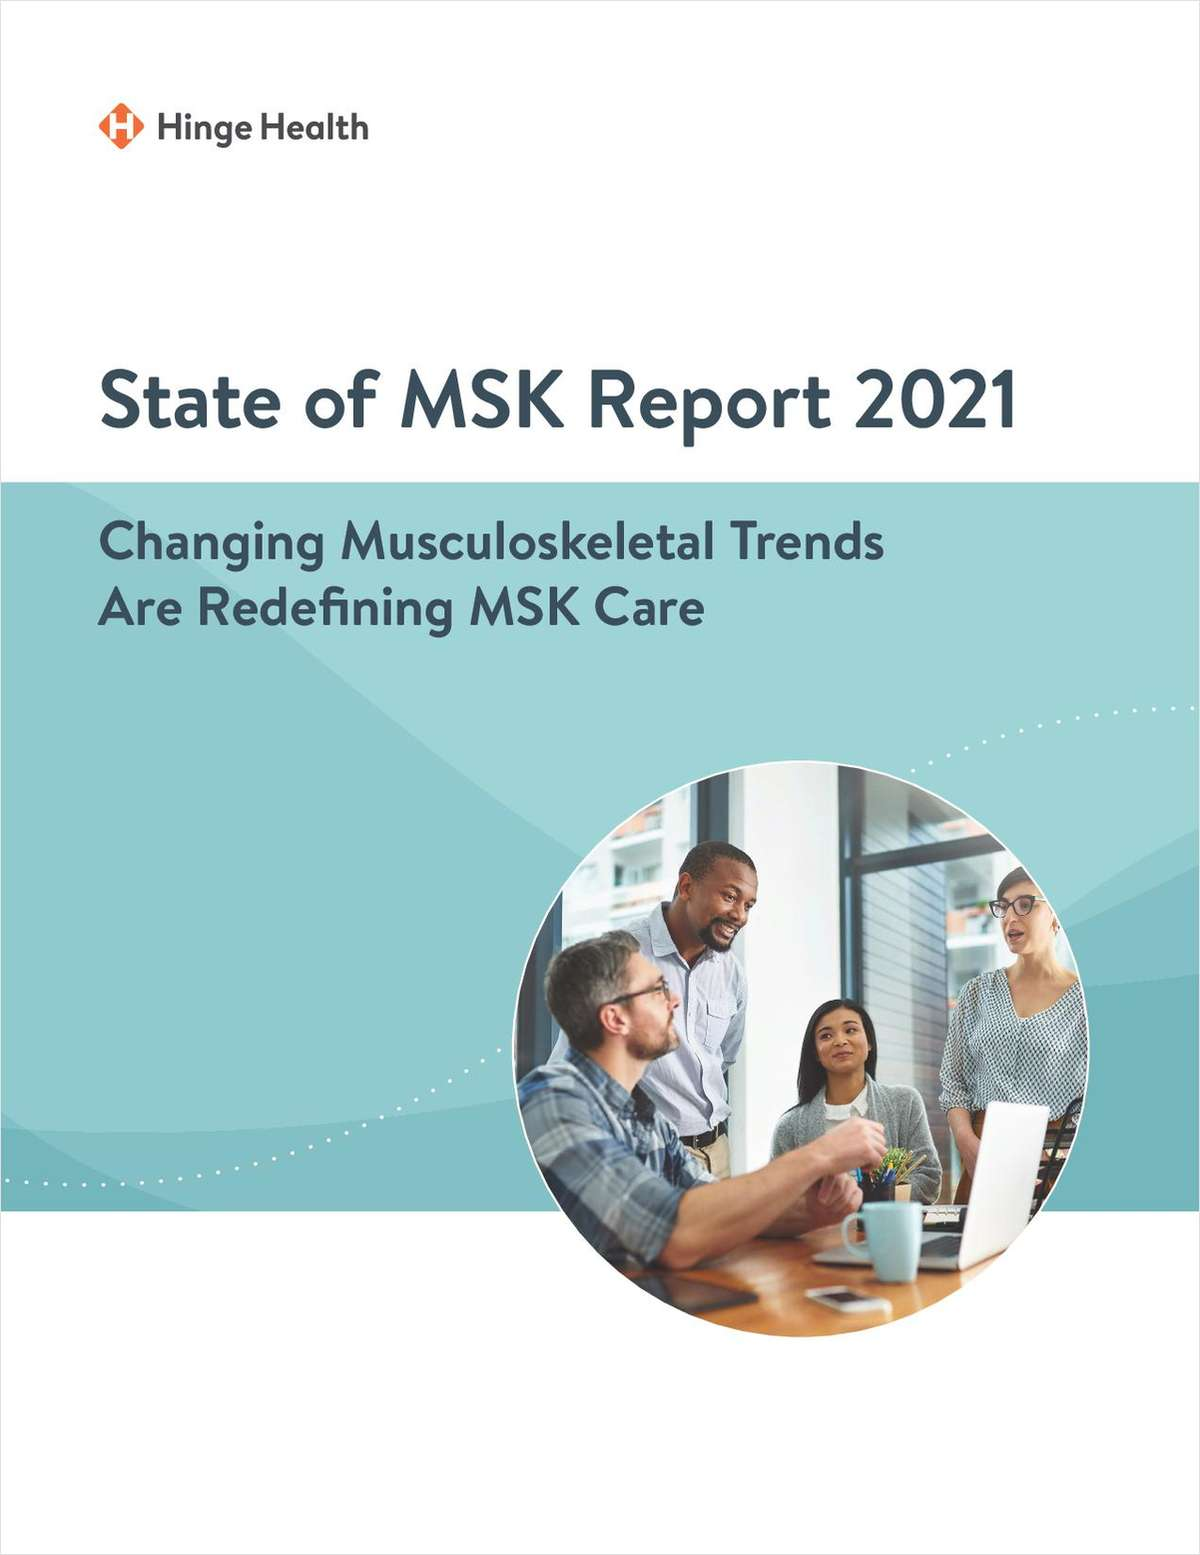 Changing Musculoskeletal Trends Redefining MSK Care: State of 2021 Report